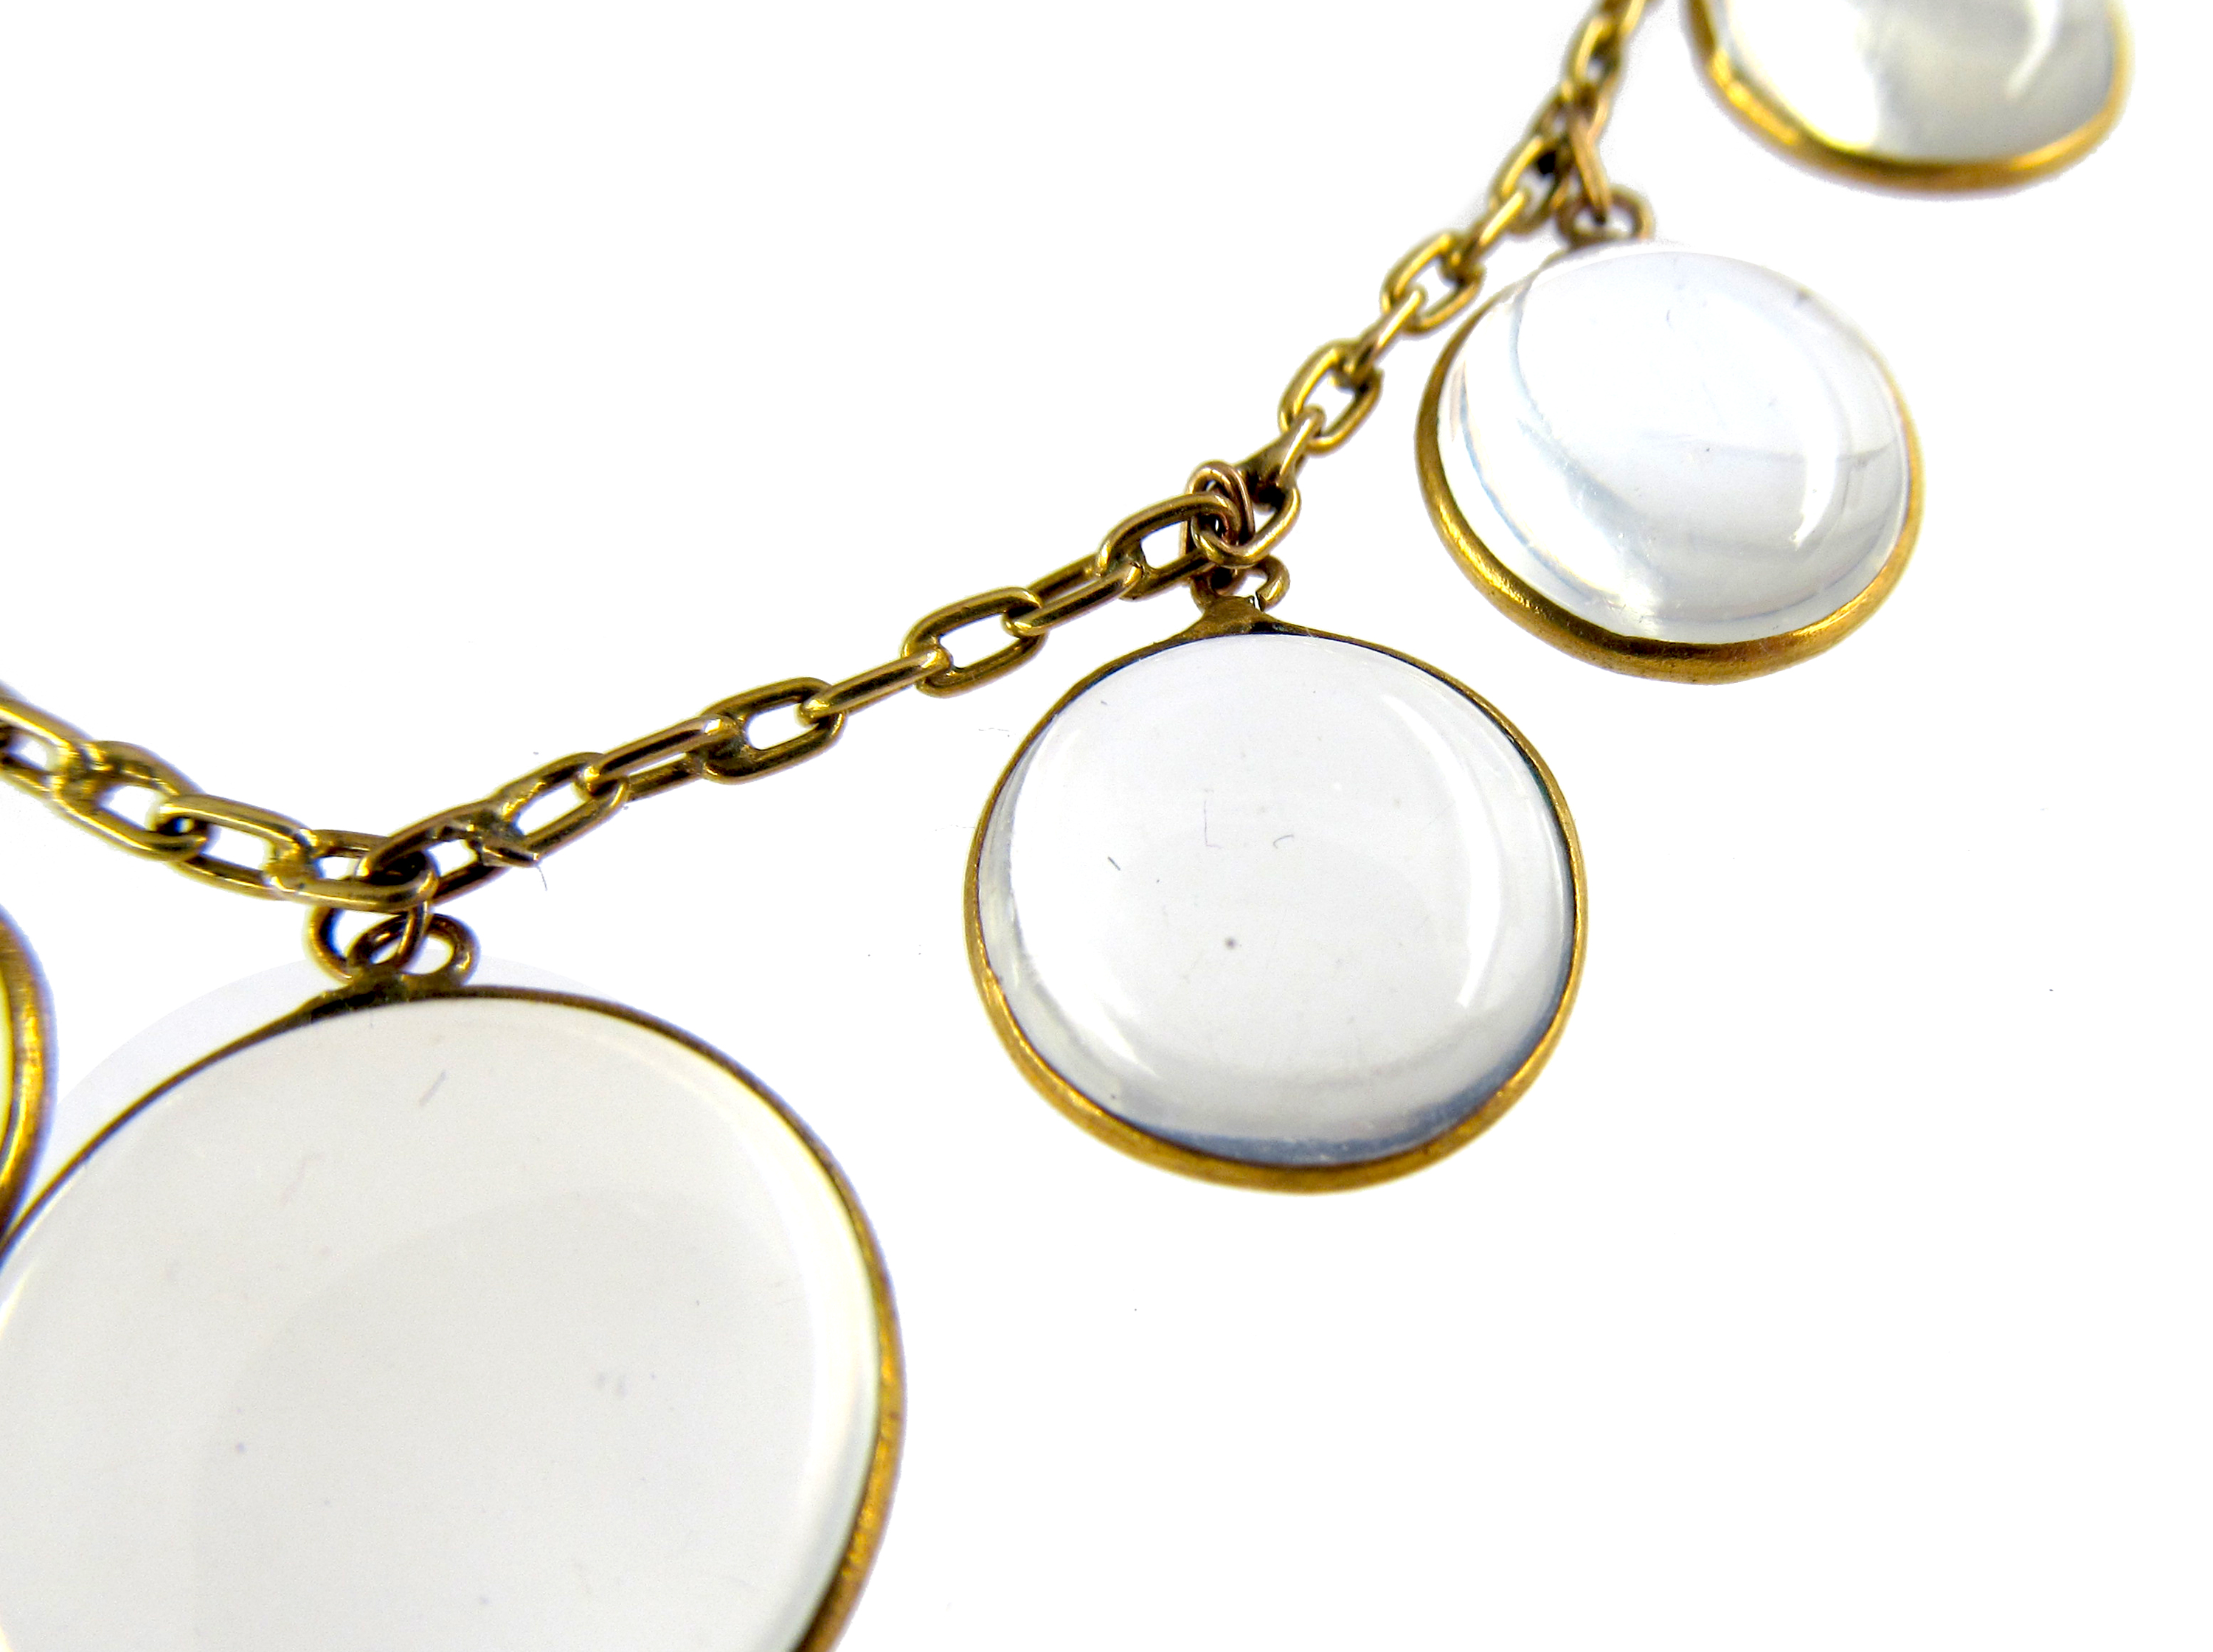 Edwardian Gold & Moonstone Round Drops Necklace